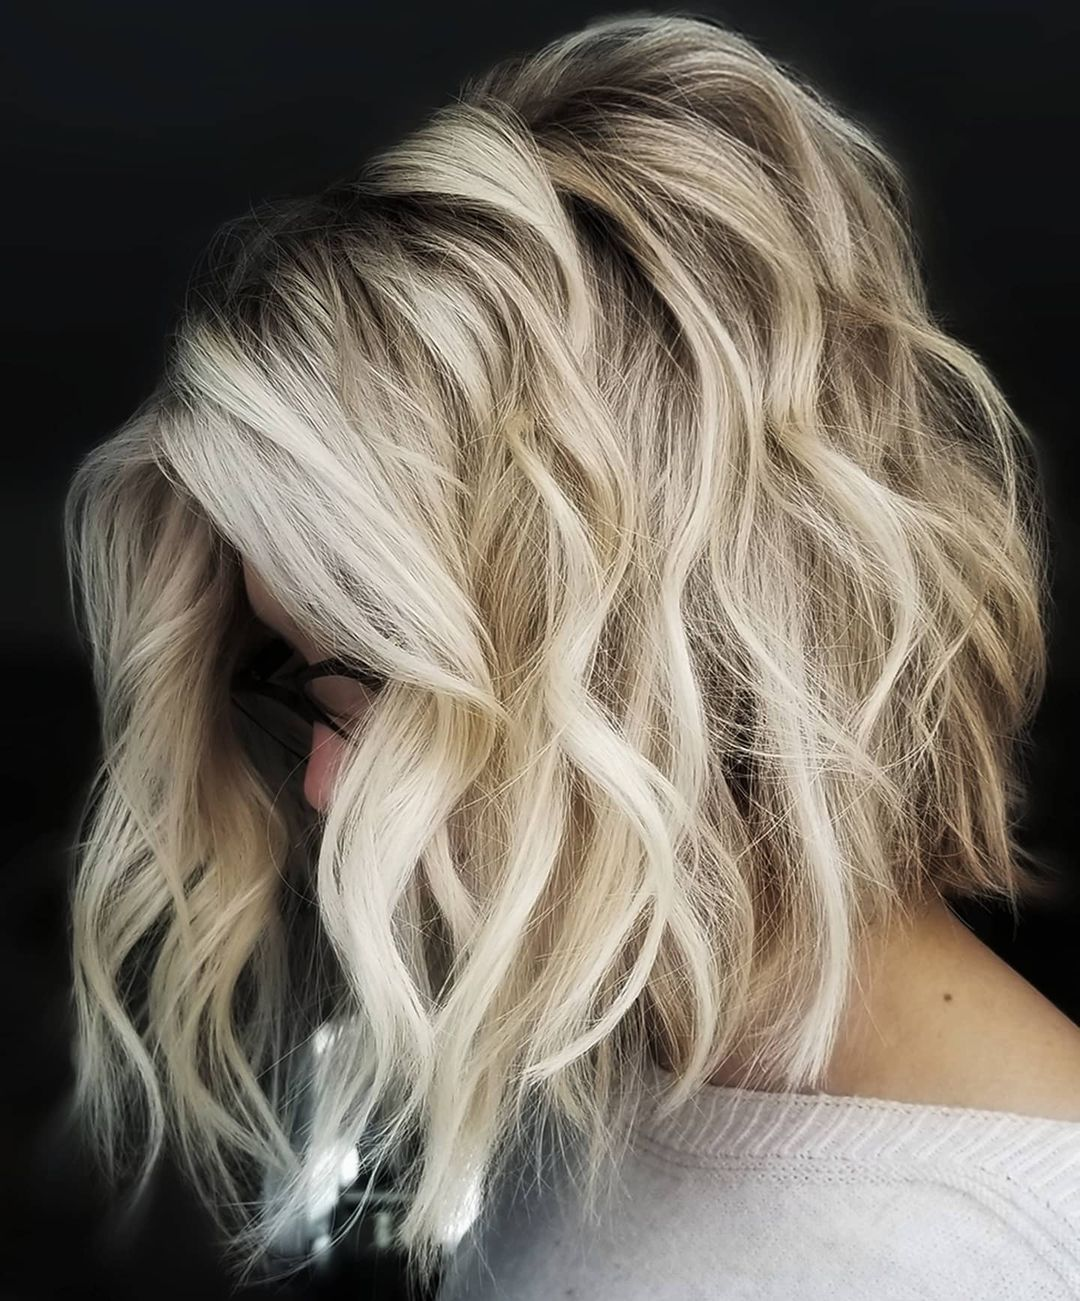 Light Blonde Short Hair with Waves